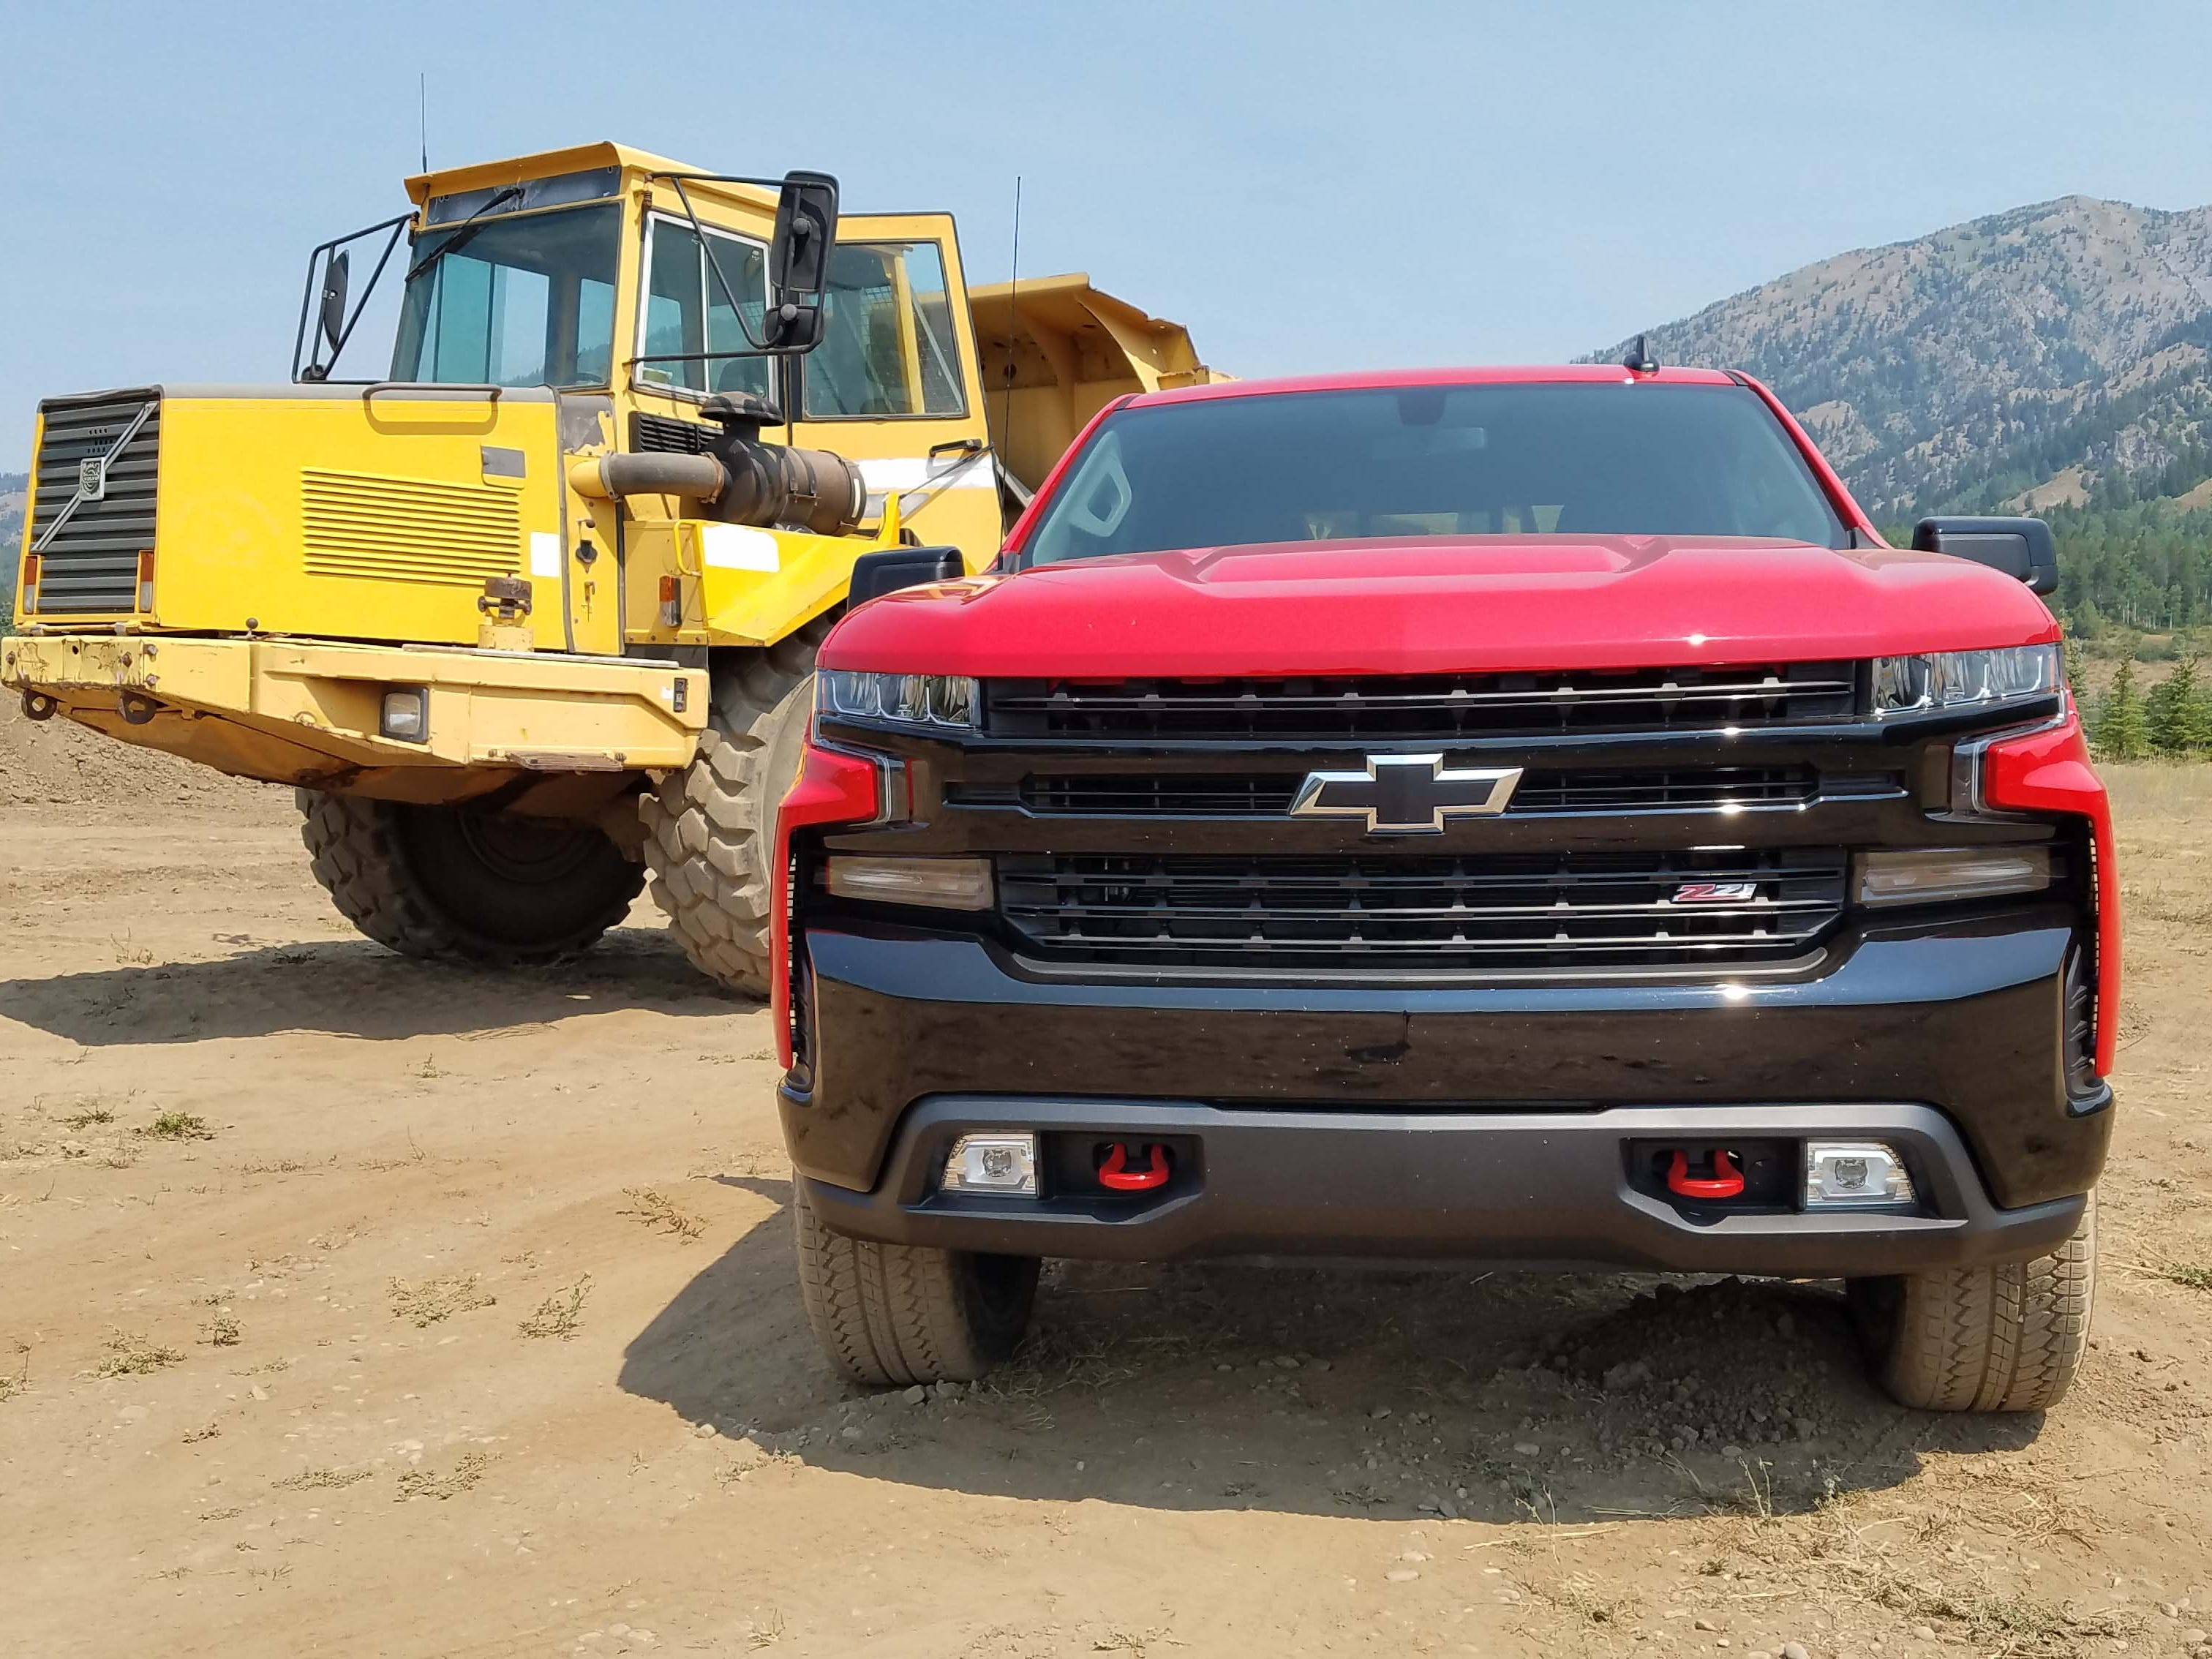 The 2019 Chevy Silverado gets an all-new design. Perhaps the most dramatic aspect is the intimidating front end of the new Trail Boss off-road trim.